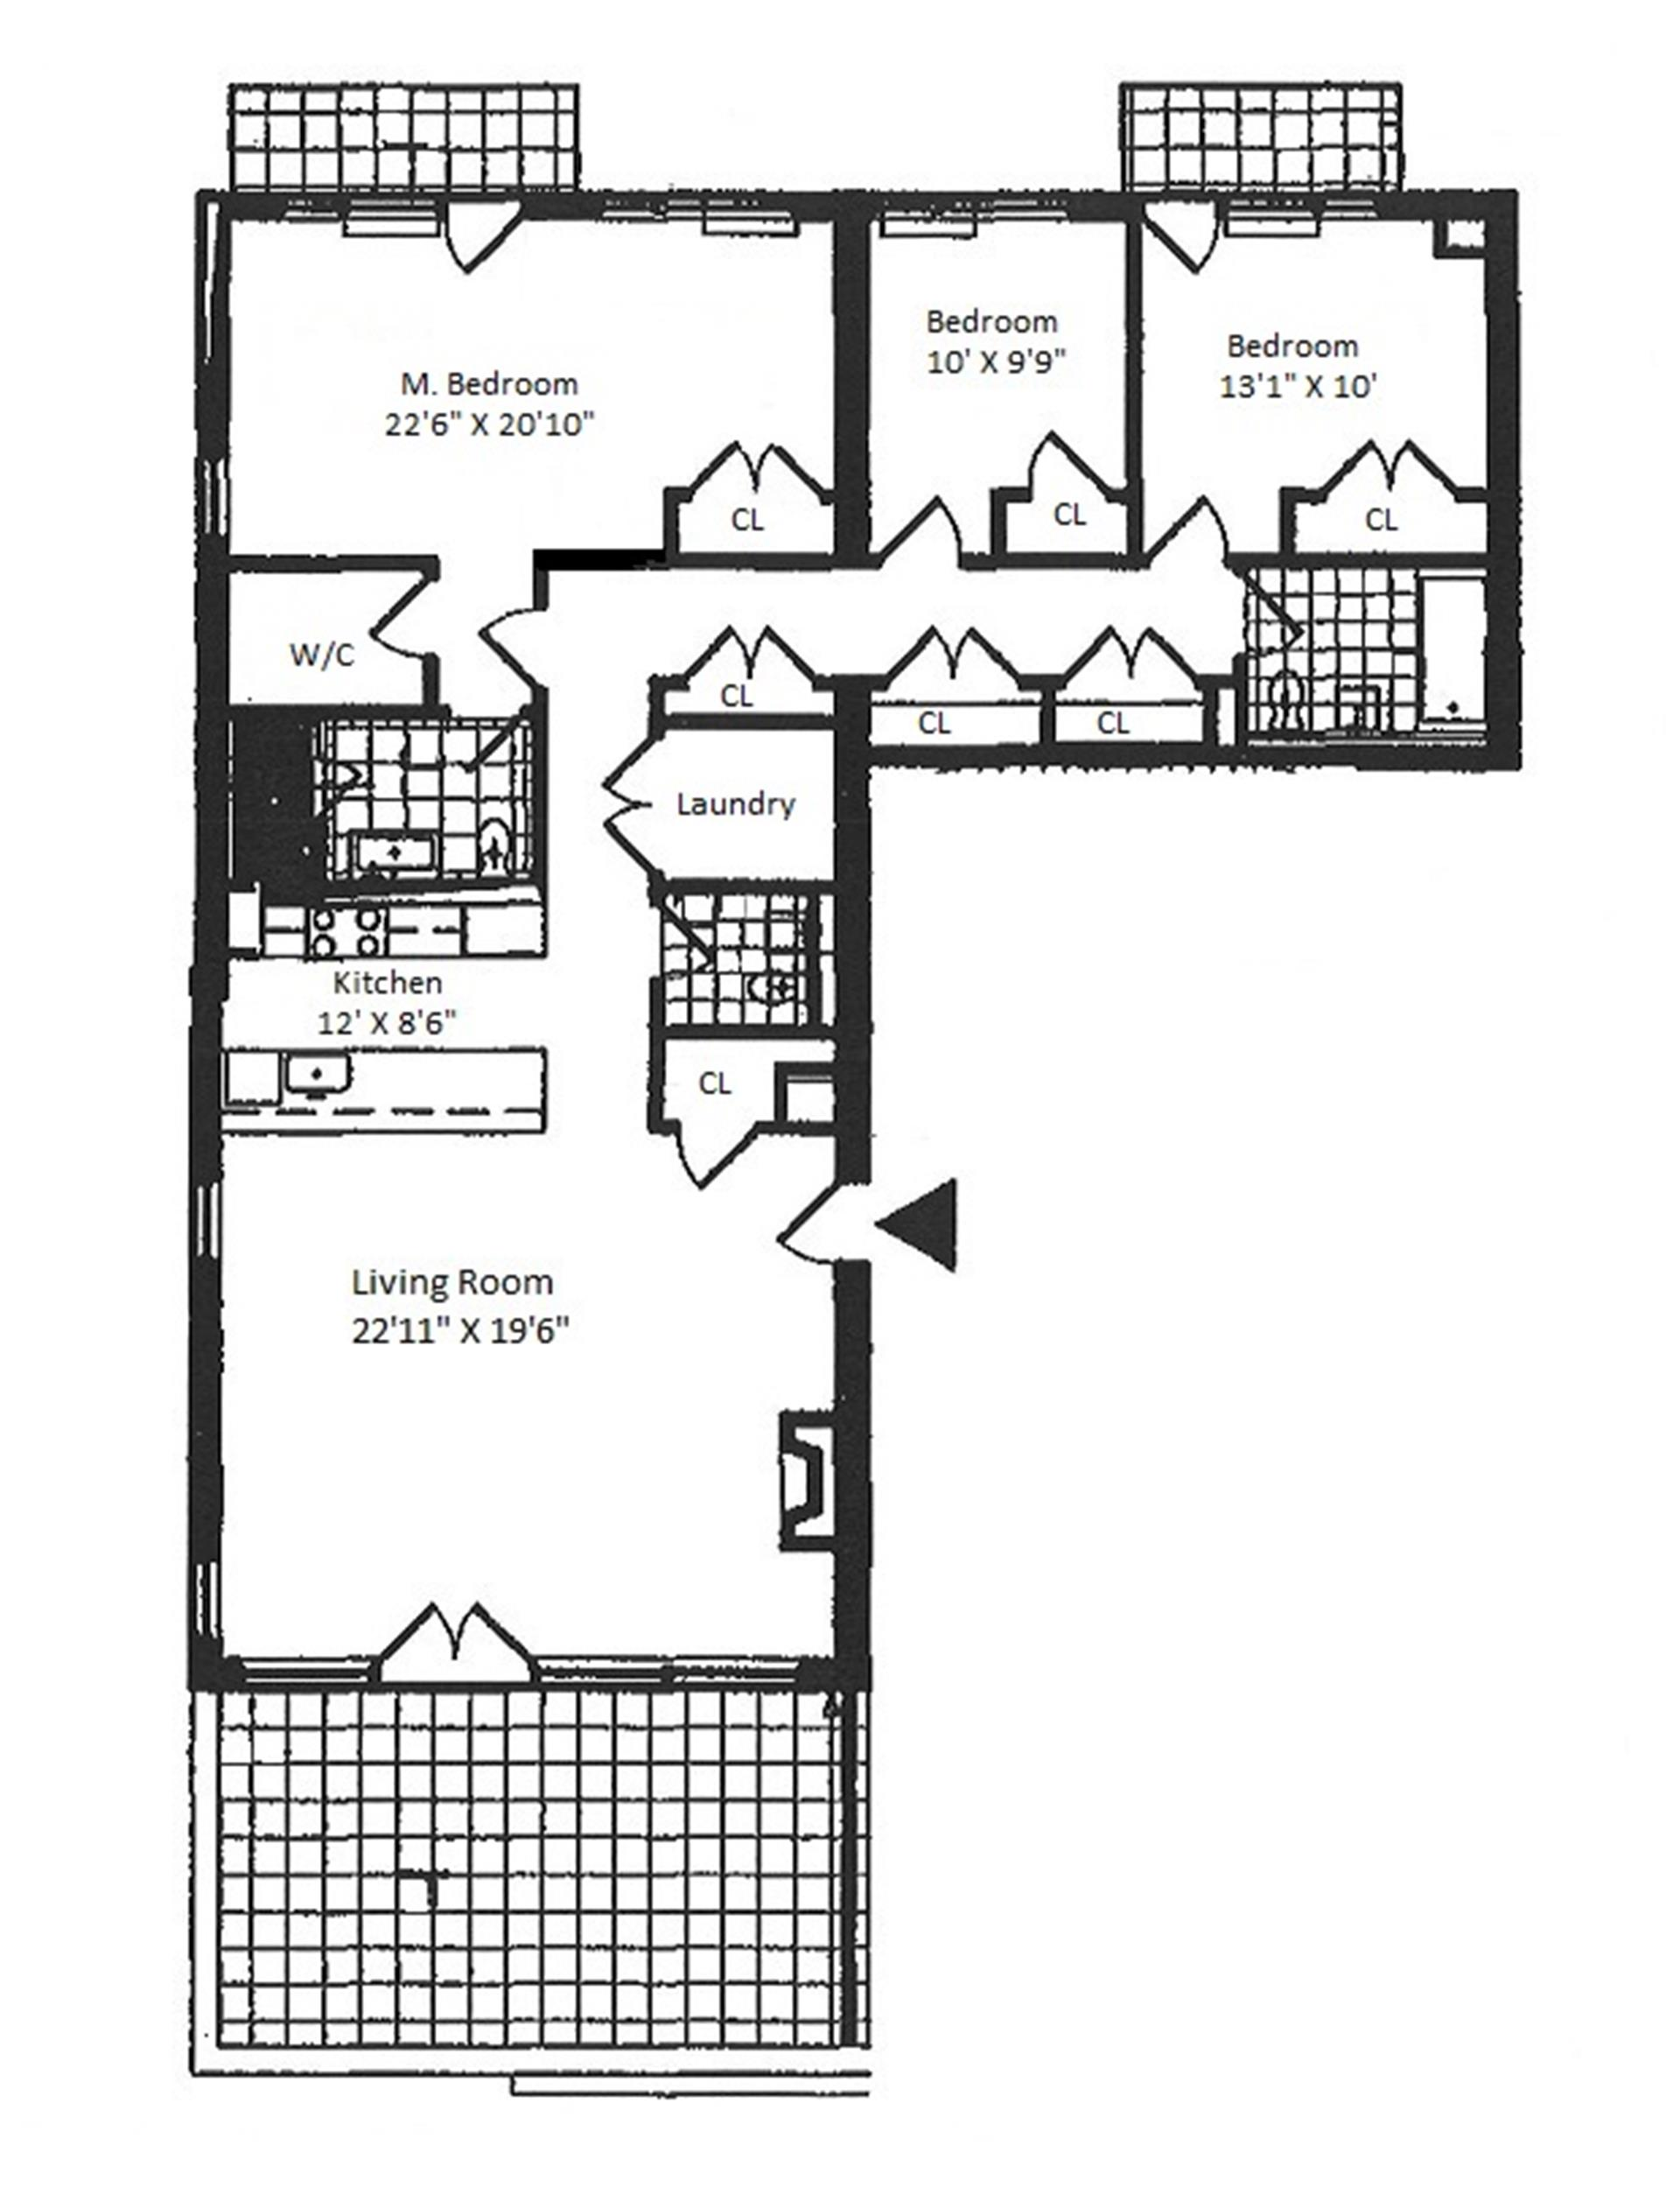 Floor plan of 154 Attorney St, 701/702 - Lower East Side, New York